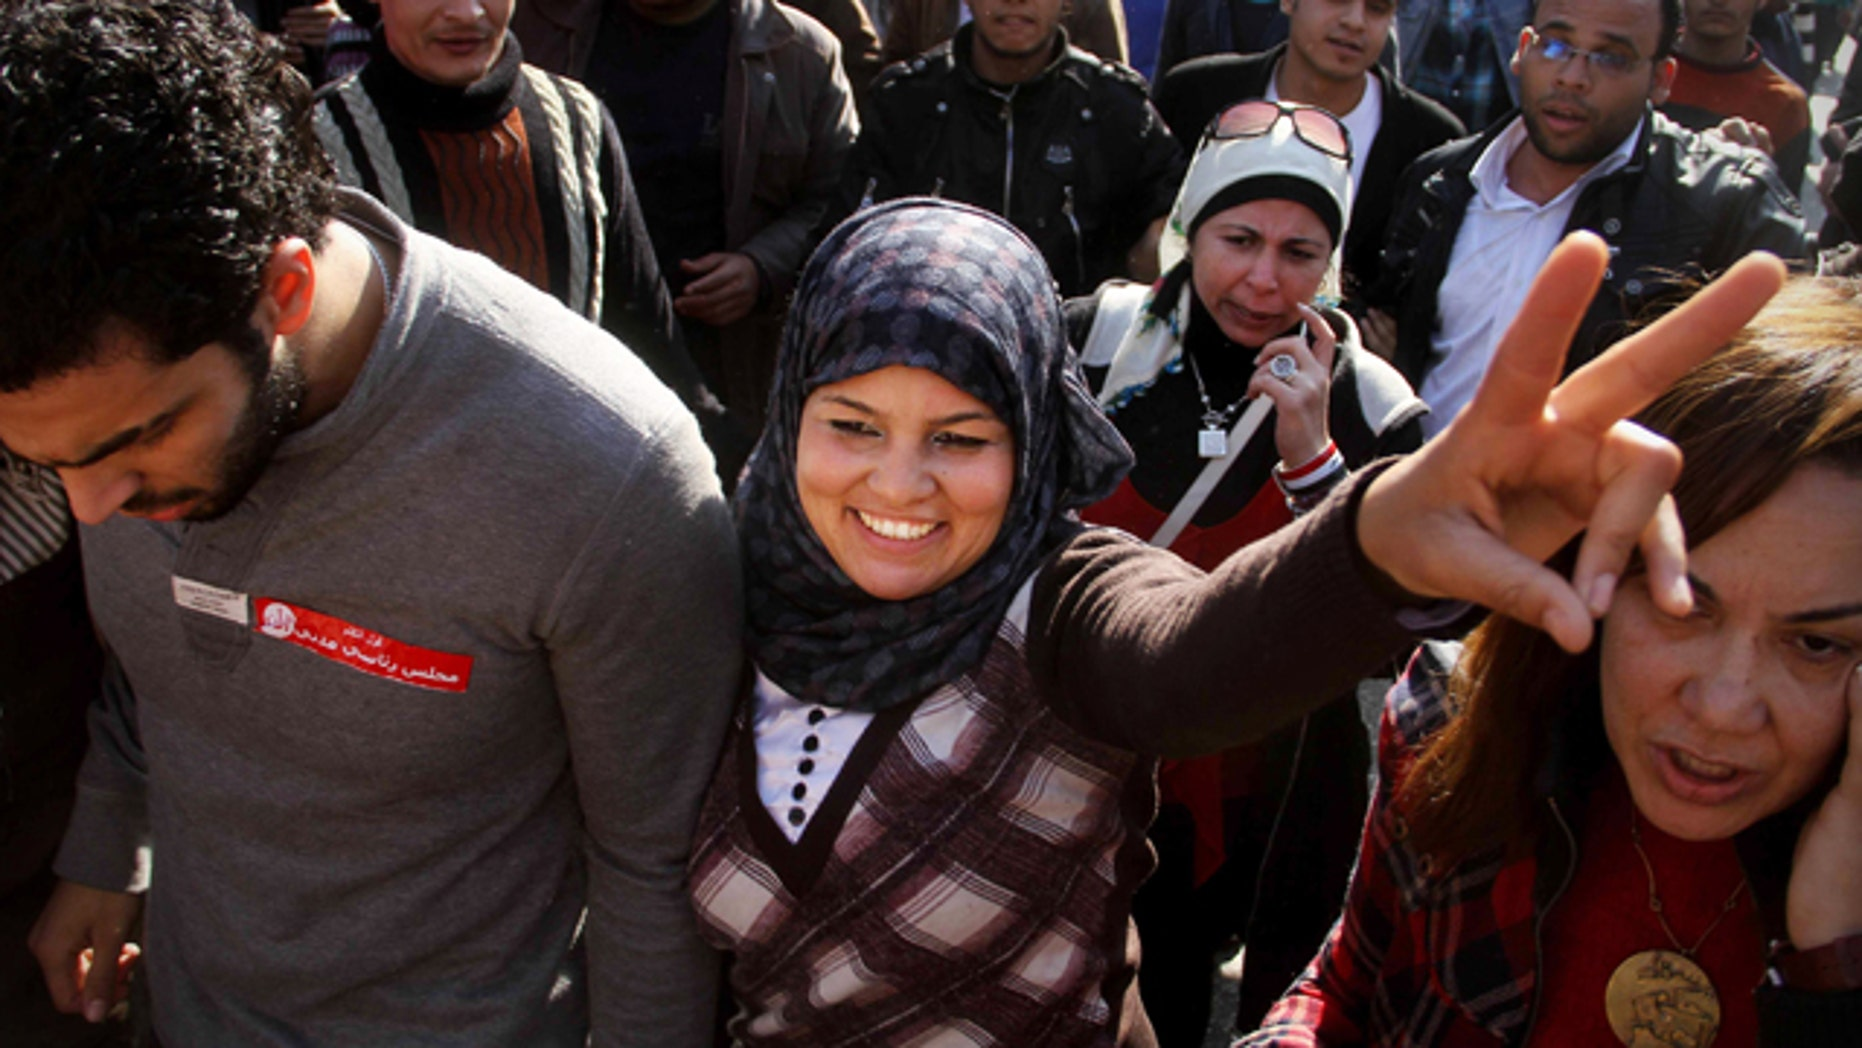 """Dec. 27, 2011: Samira Ibrahim, 25, flashes the victory sign during a rally supporting women's rights in Cairo, Egypt. An Egyptian court has ordered the country's military rulers to stop the use of """"virginity tests"""" on female detainees, a practice that has caused an uproar among activists and rights. Ibrahim filed a lawsuit after being subjected to a forced 'test."""""""